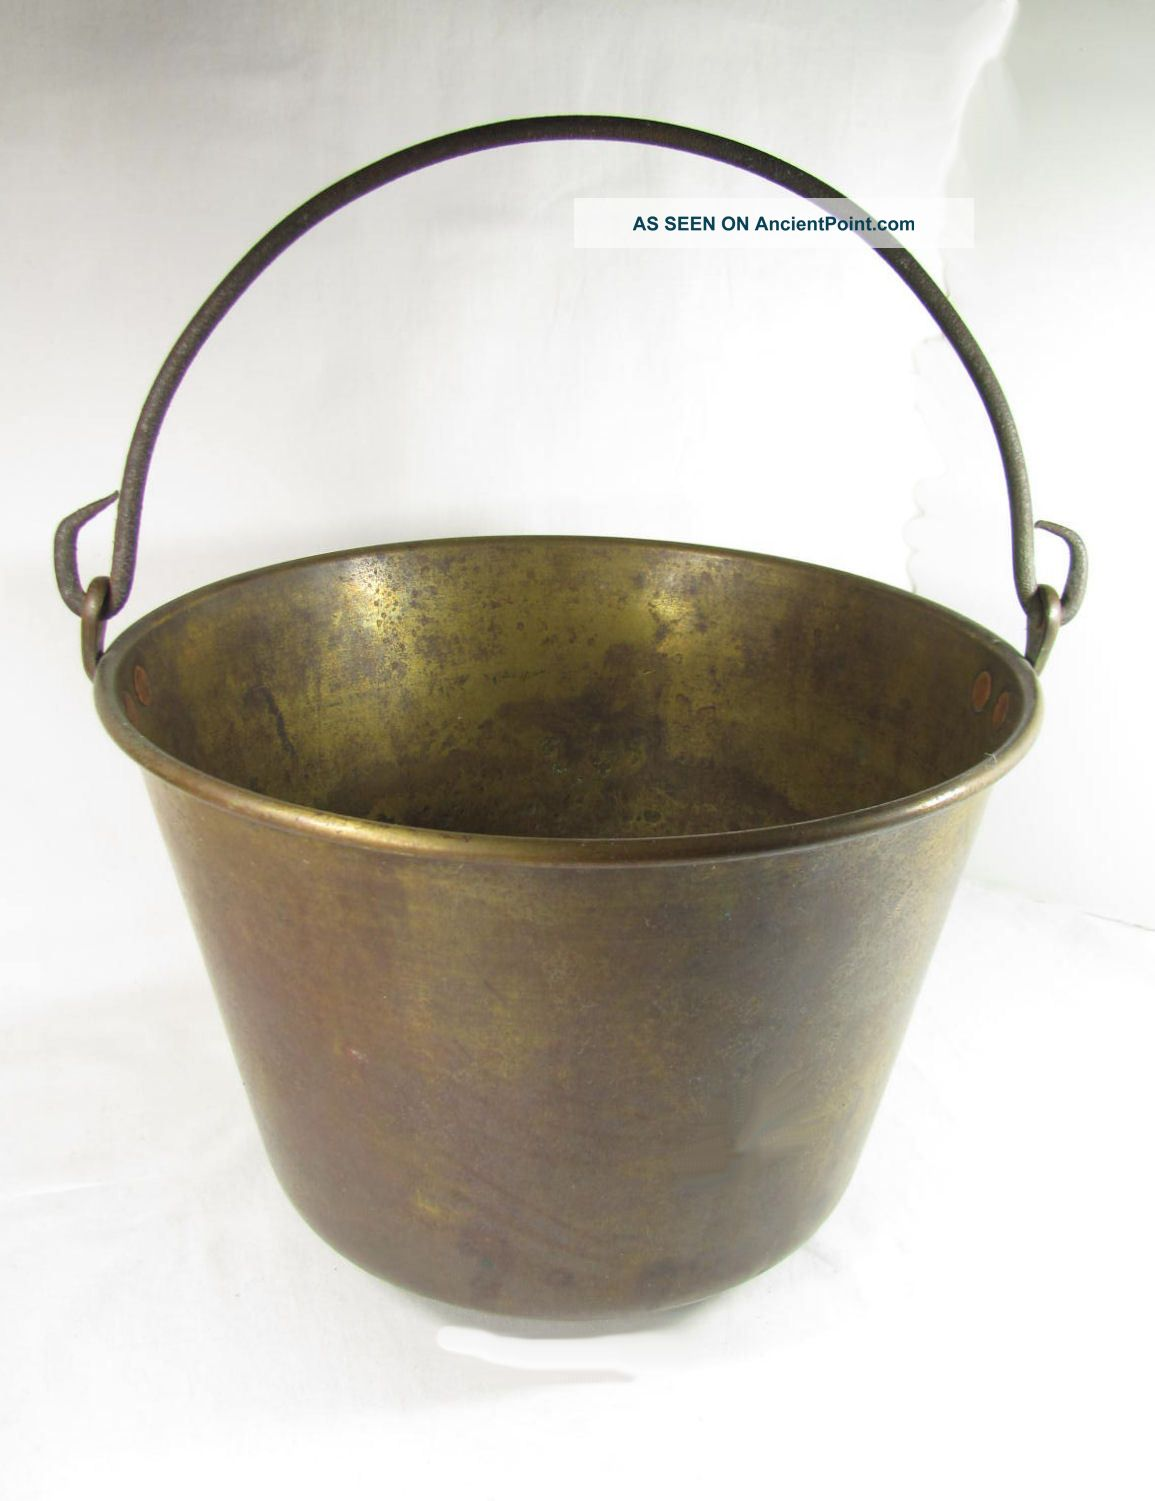 Antique Brass Hanging Pot,  Hearth Cooking,  Good Condition Hearth Ware photo